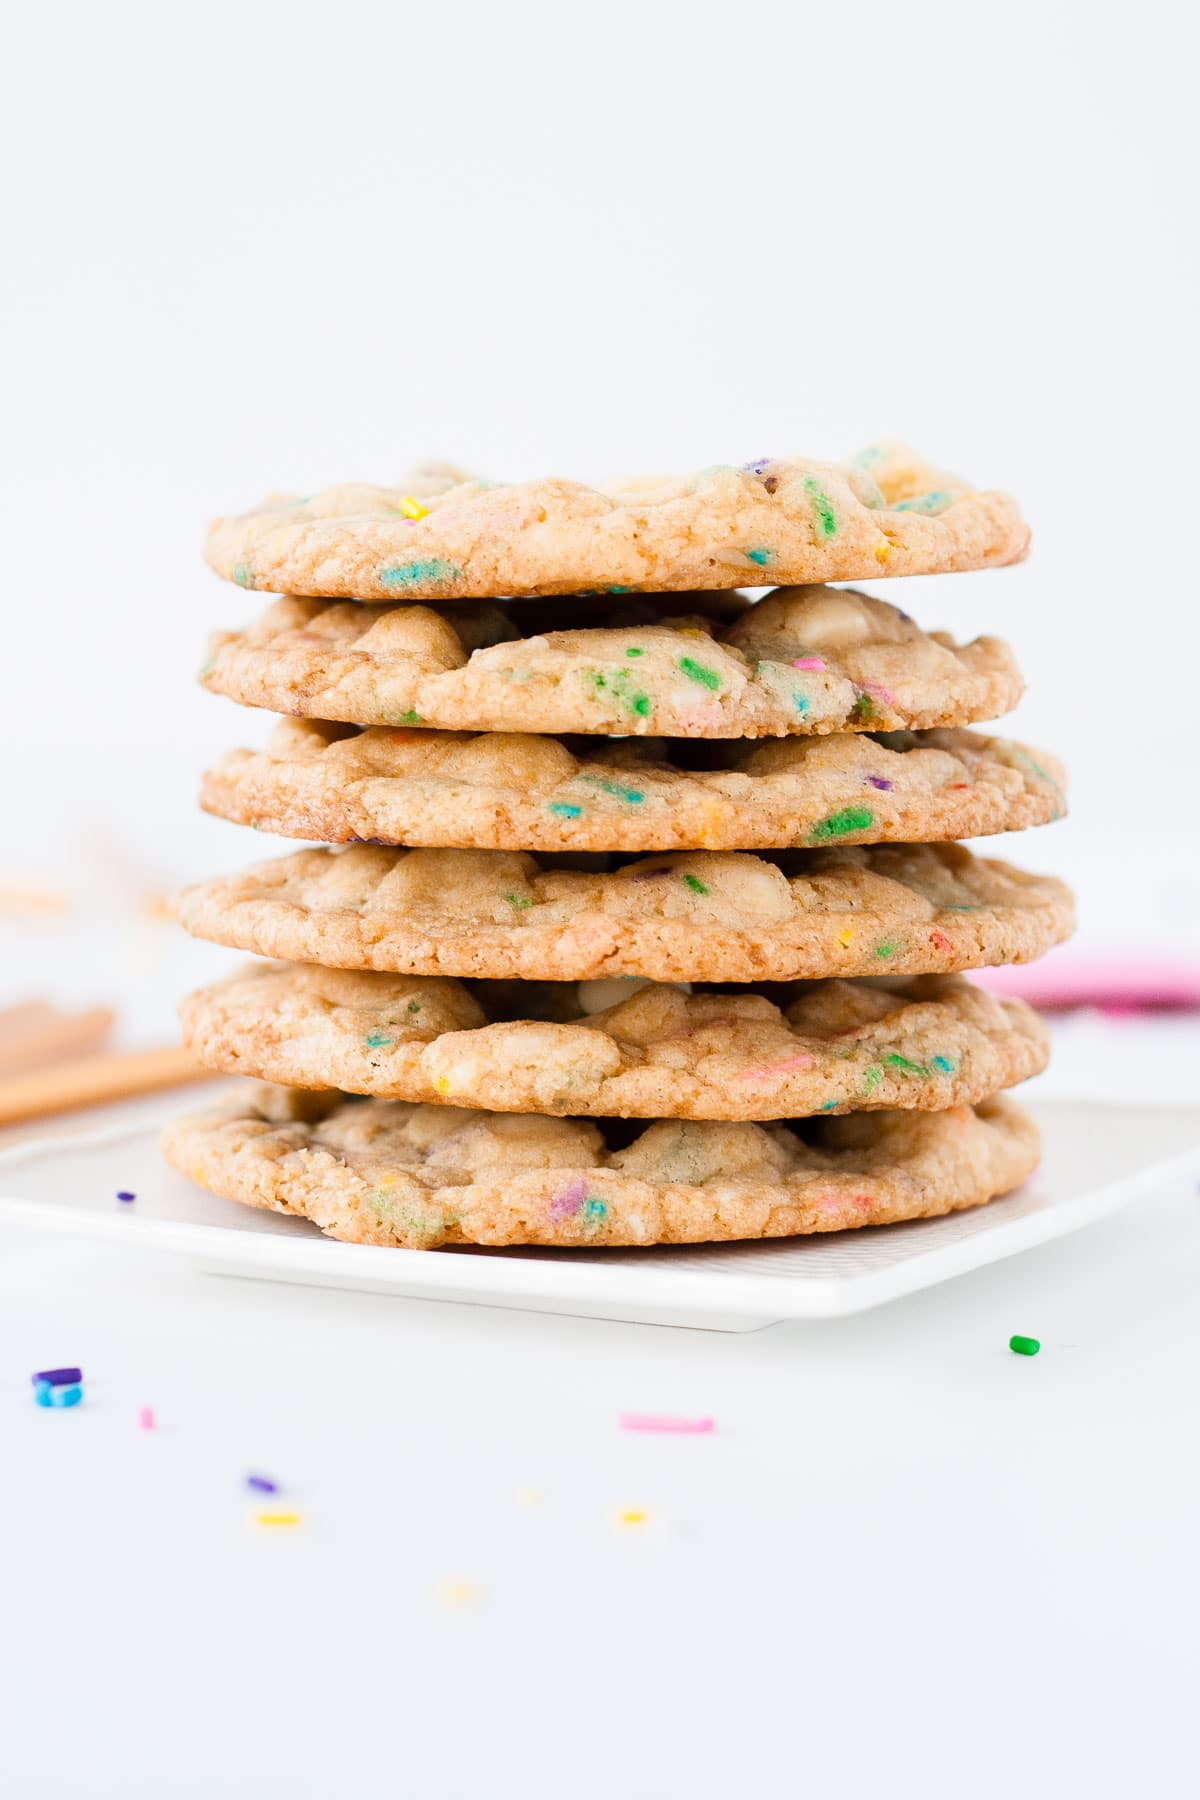 Stack of cookies on a white plate.